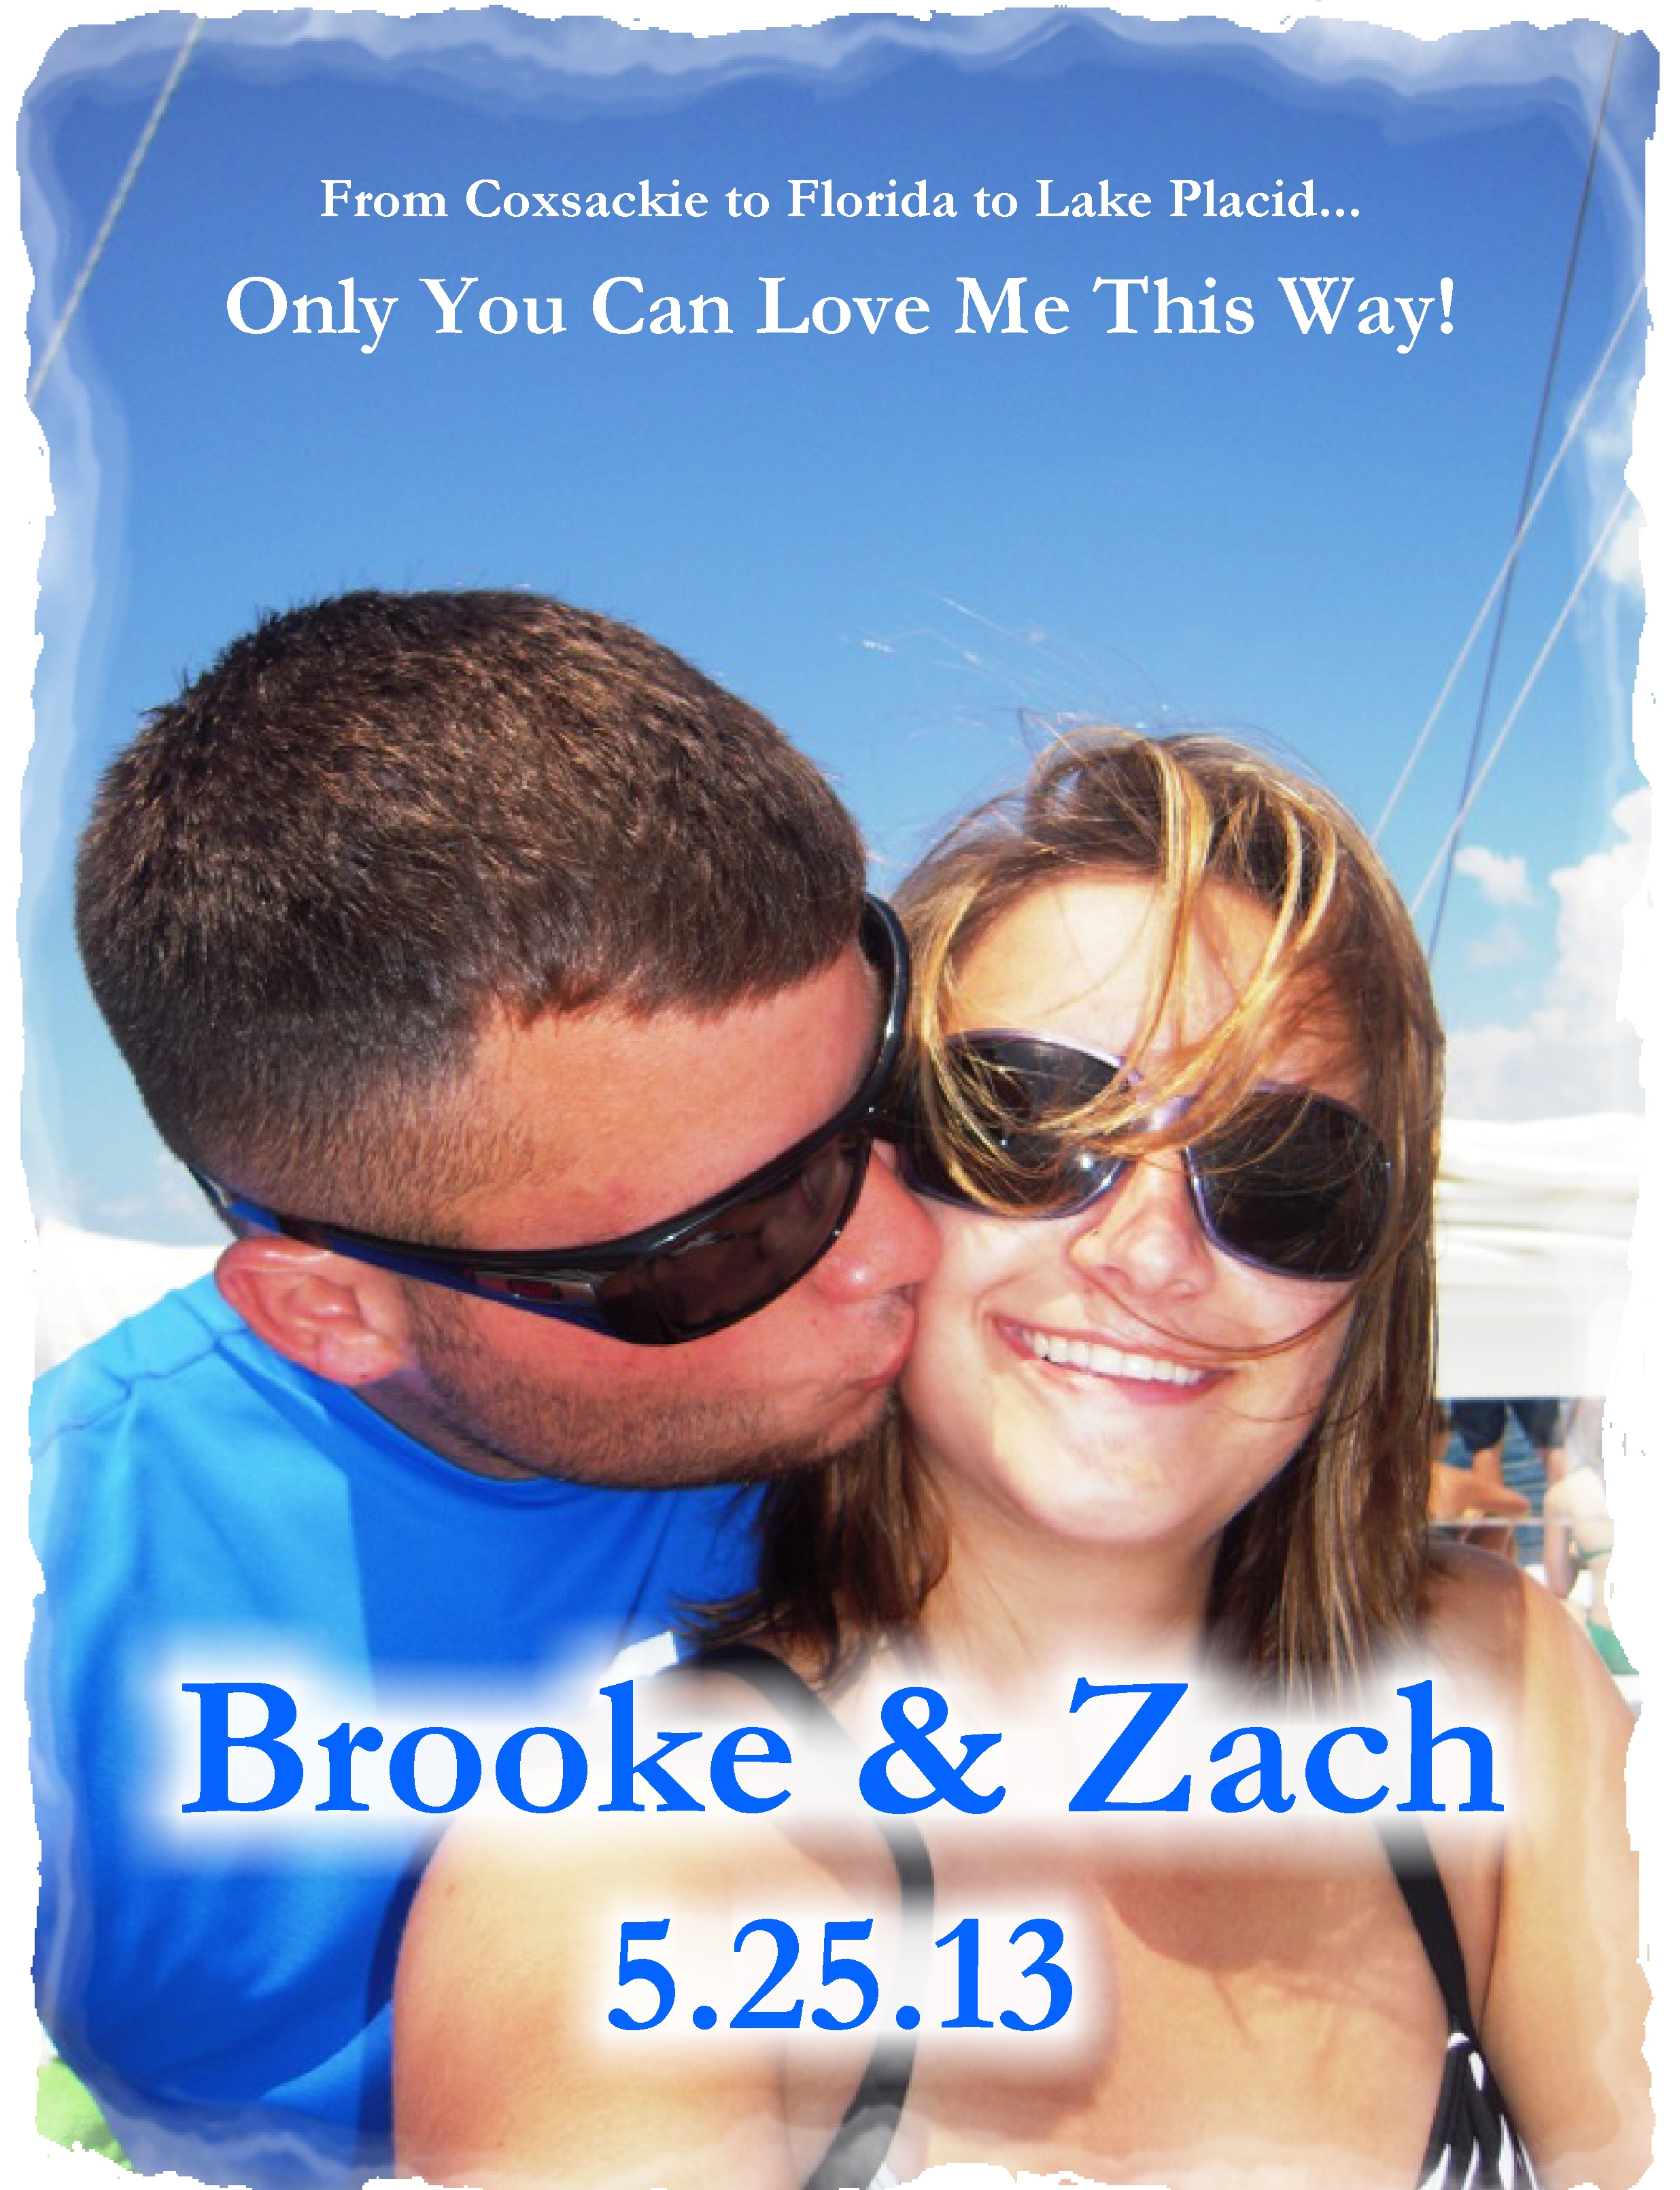 5-25-13 brooke & zach